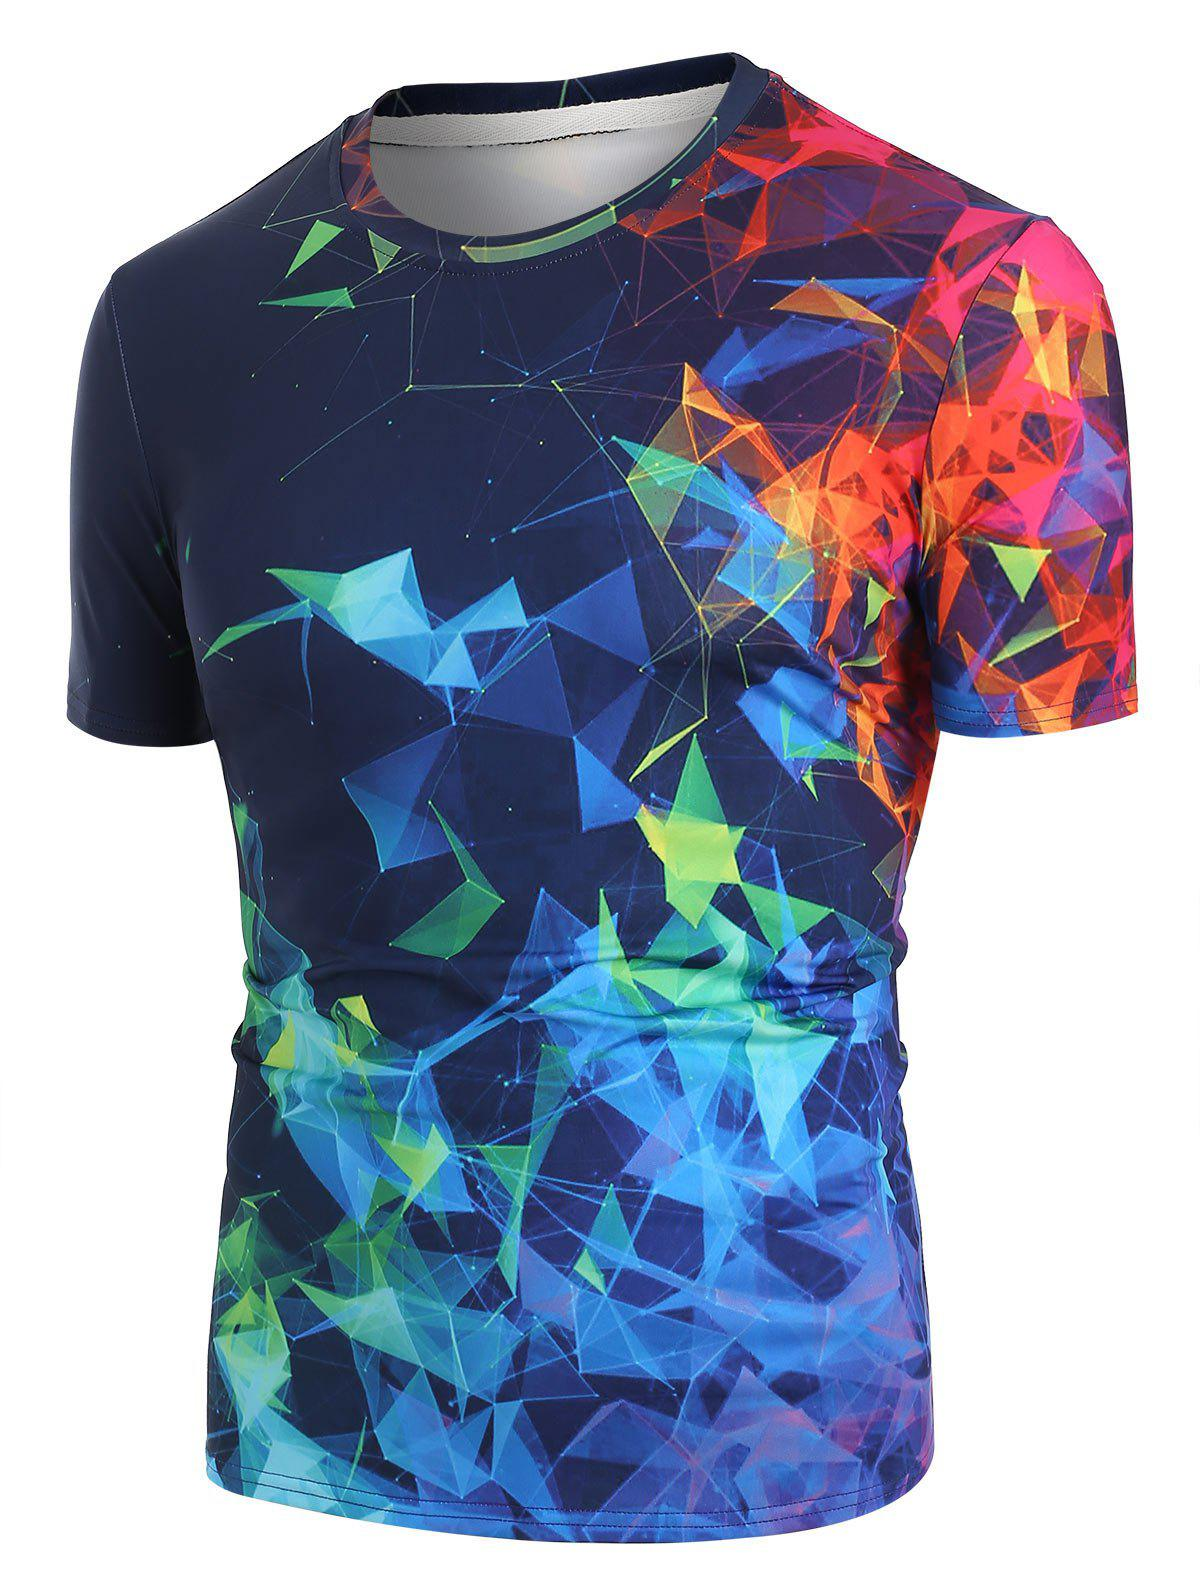 Colorful Geometric 3D Print Short Sleeve T-shirt - BLACK M